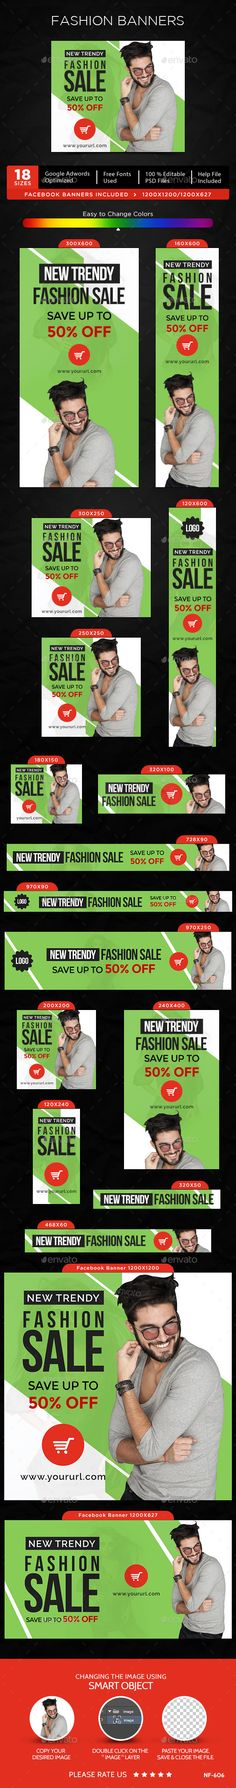 Fashion Sale Banners Template #design #ads Download: http://graphicriver.net/item/fashion-sale-banners/12705601?ref=ksioks